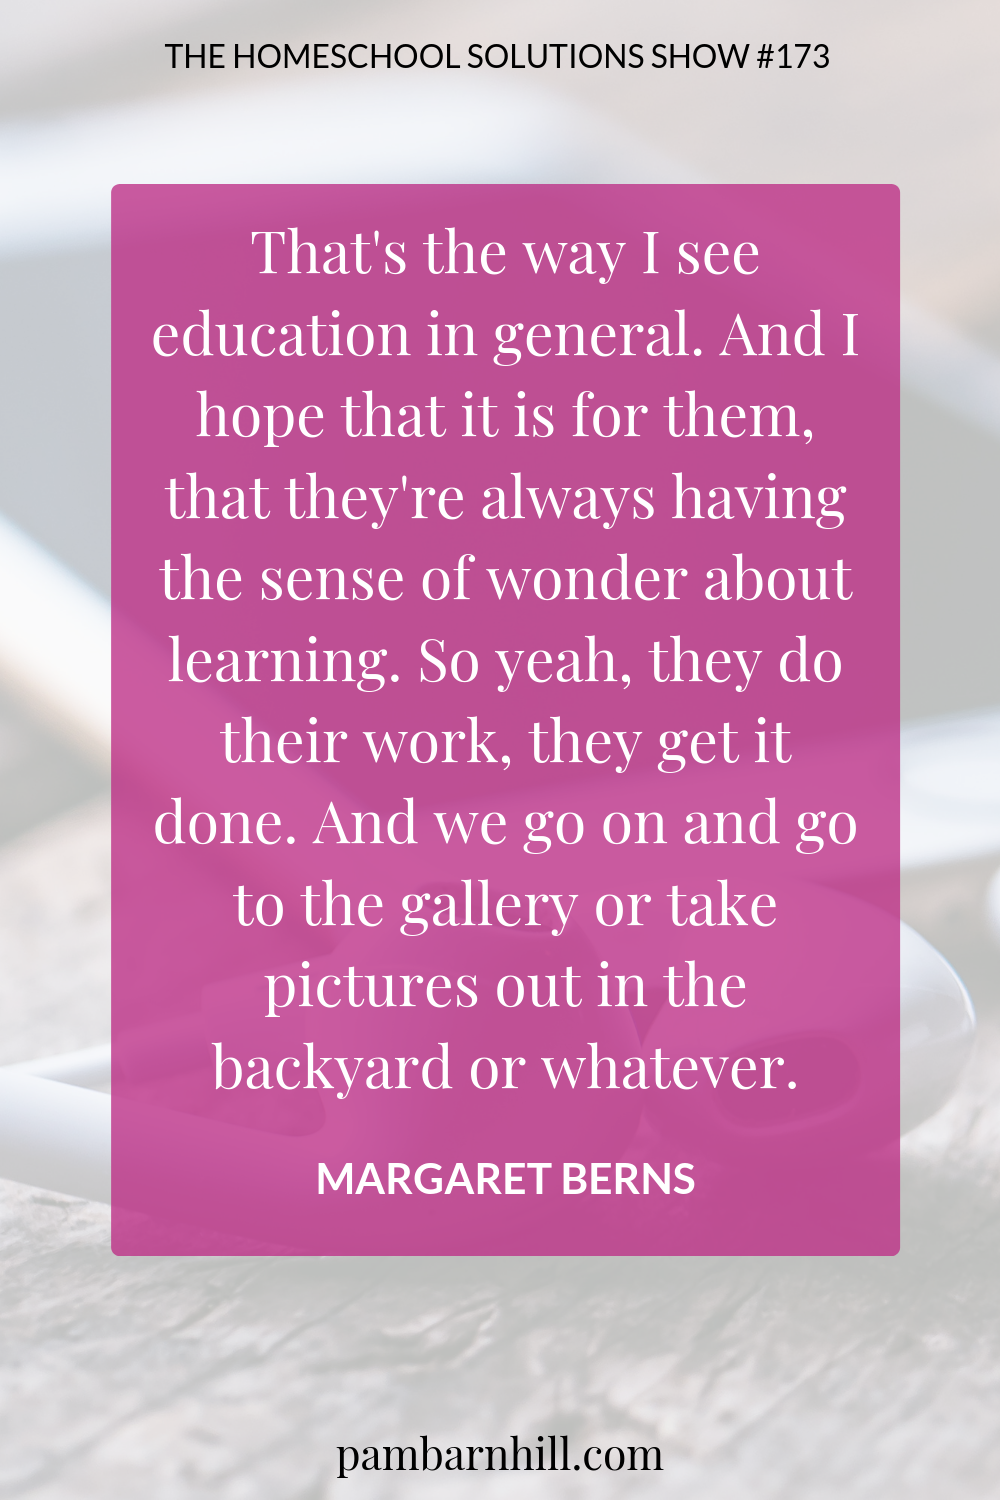 HS 173: Are You a School At Home Homeschooler with Margaret Berns Pin